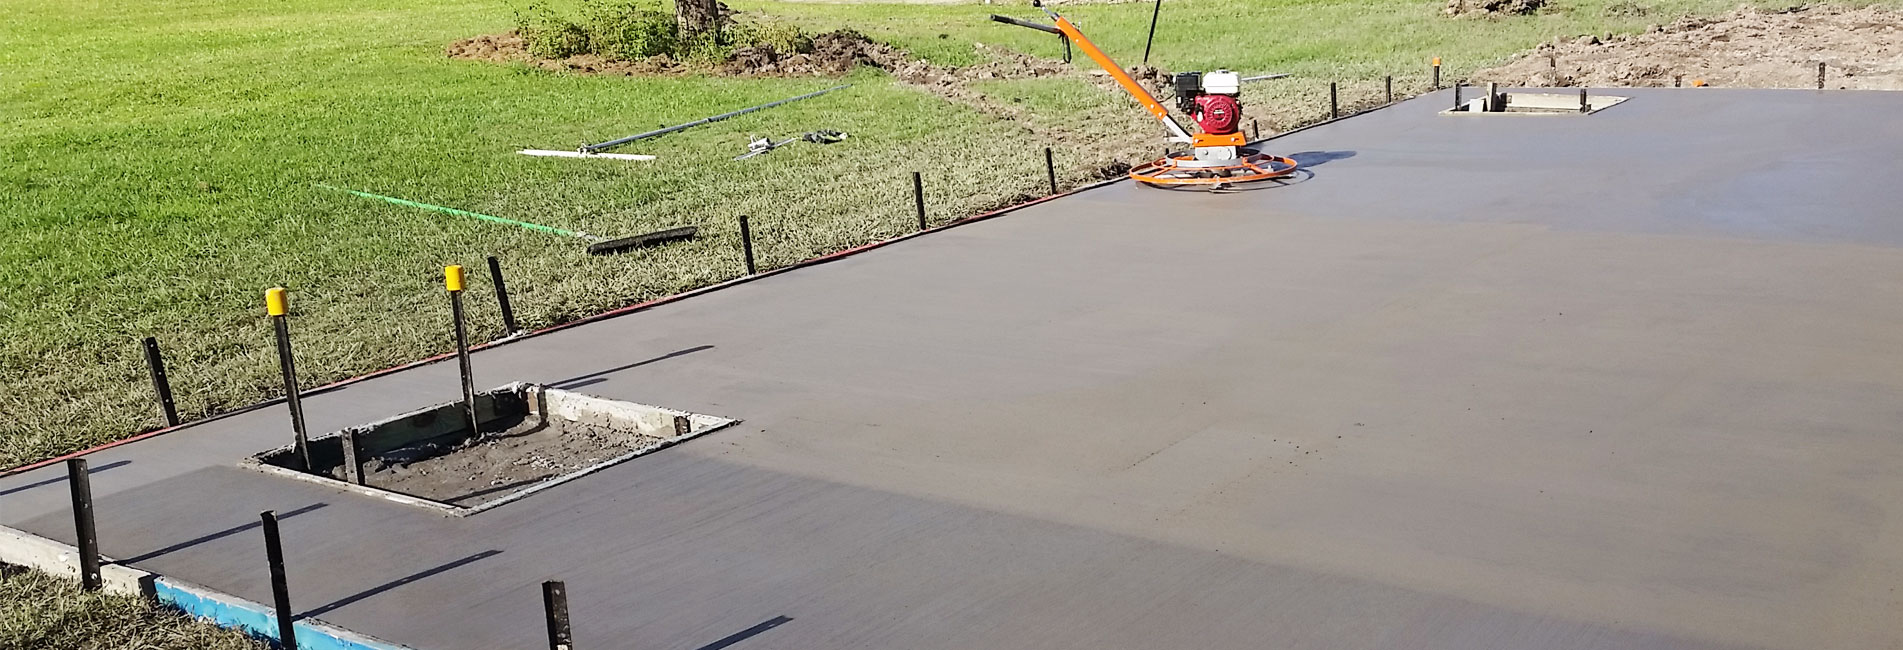 Concrete Slabs Mountain Creek, Shed Slabs Brightwater, Coloured Concrete Kiama, Concreter Buderim, Concreting Contractor Kawana, Concrete Laying Parklake, Concreter Mountain Creek, Driveways Kawana, Exposed Concrete Brightwater, Decorative Concrete Nambour, Stamped Concrete Parklakes